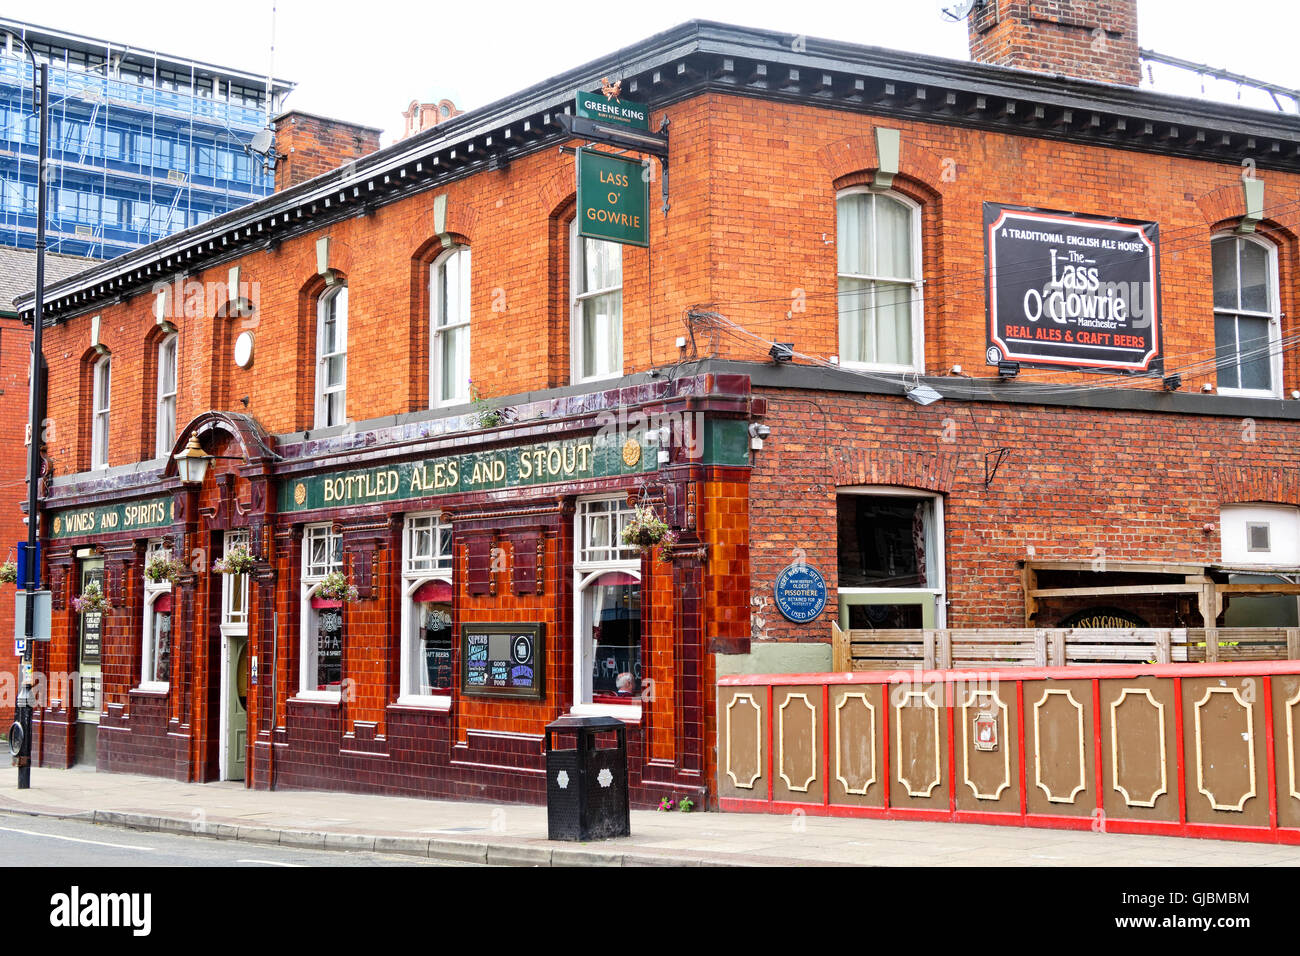 Lass O Gowrie pub, 36 Charles St, Manchester, North West England, UK,  M1 7DB - Stock Image